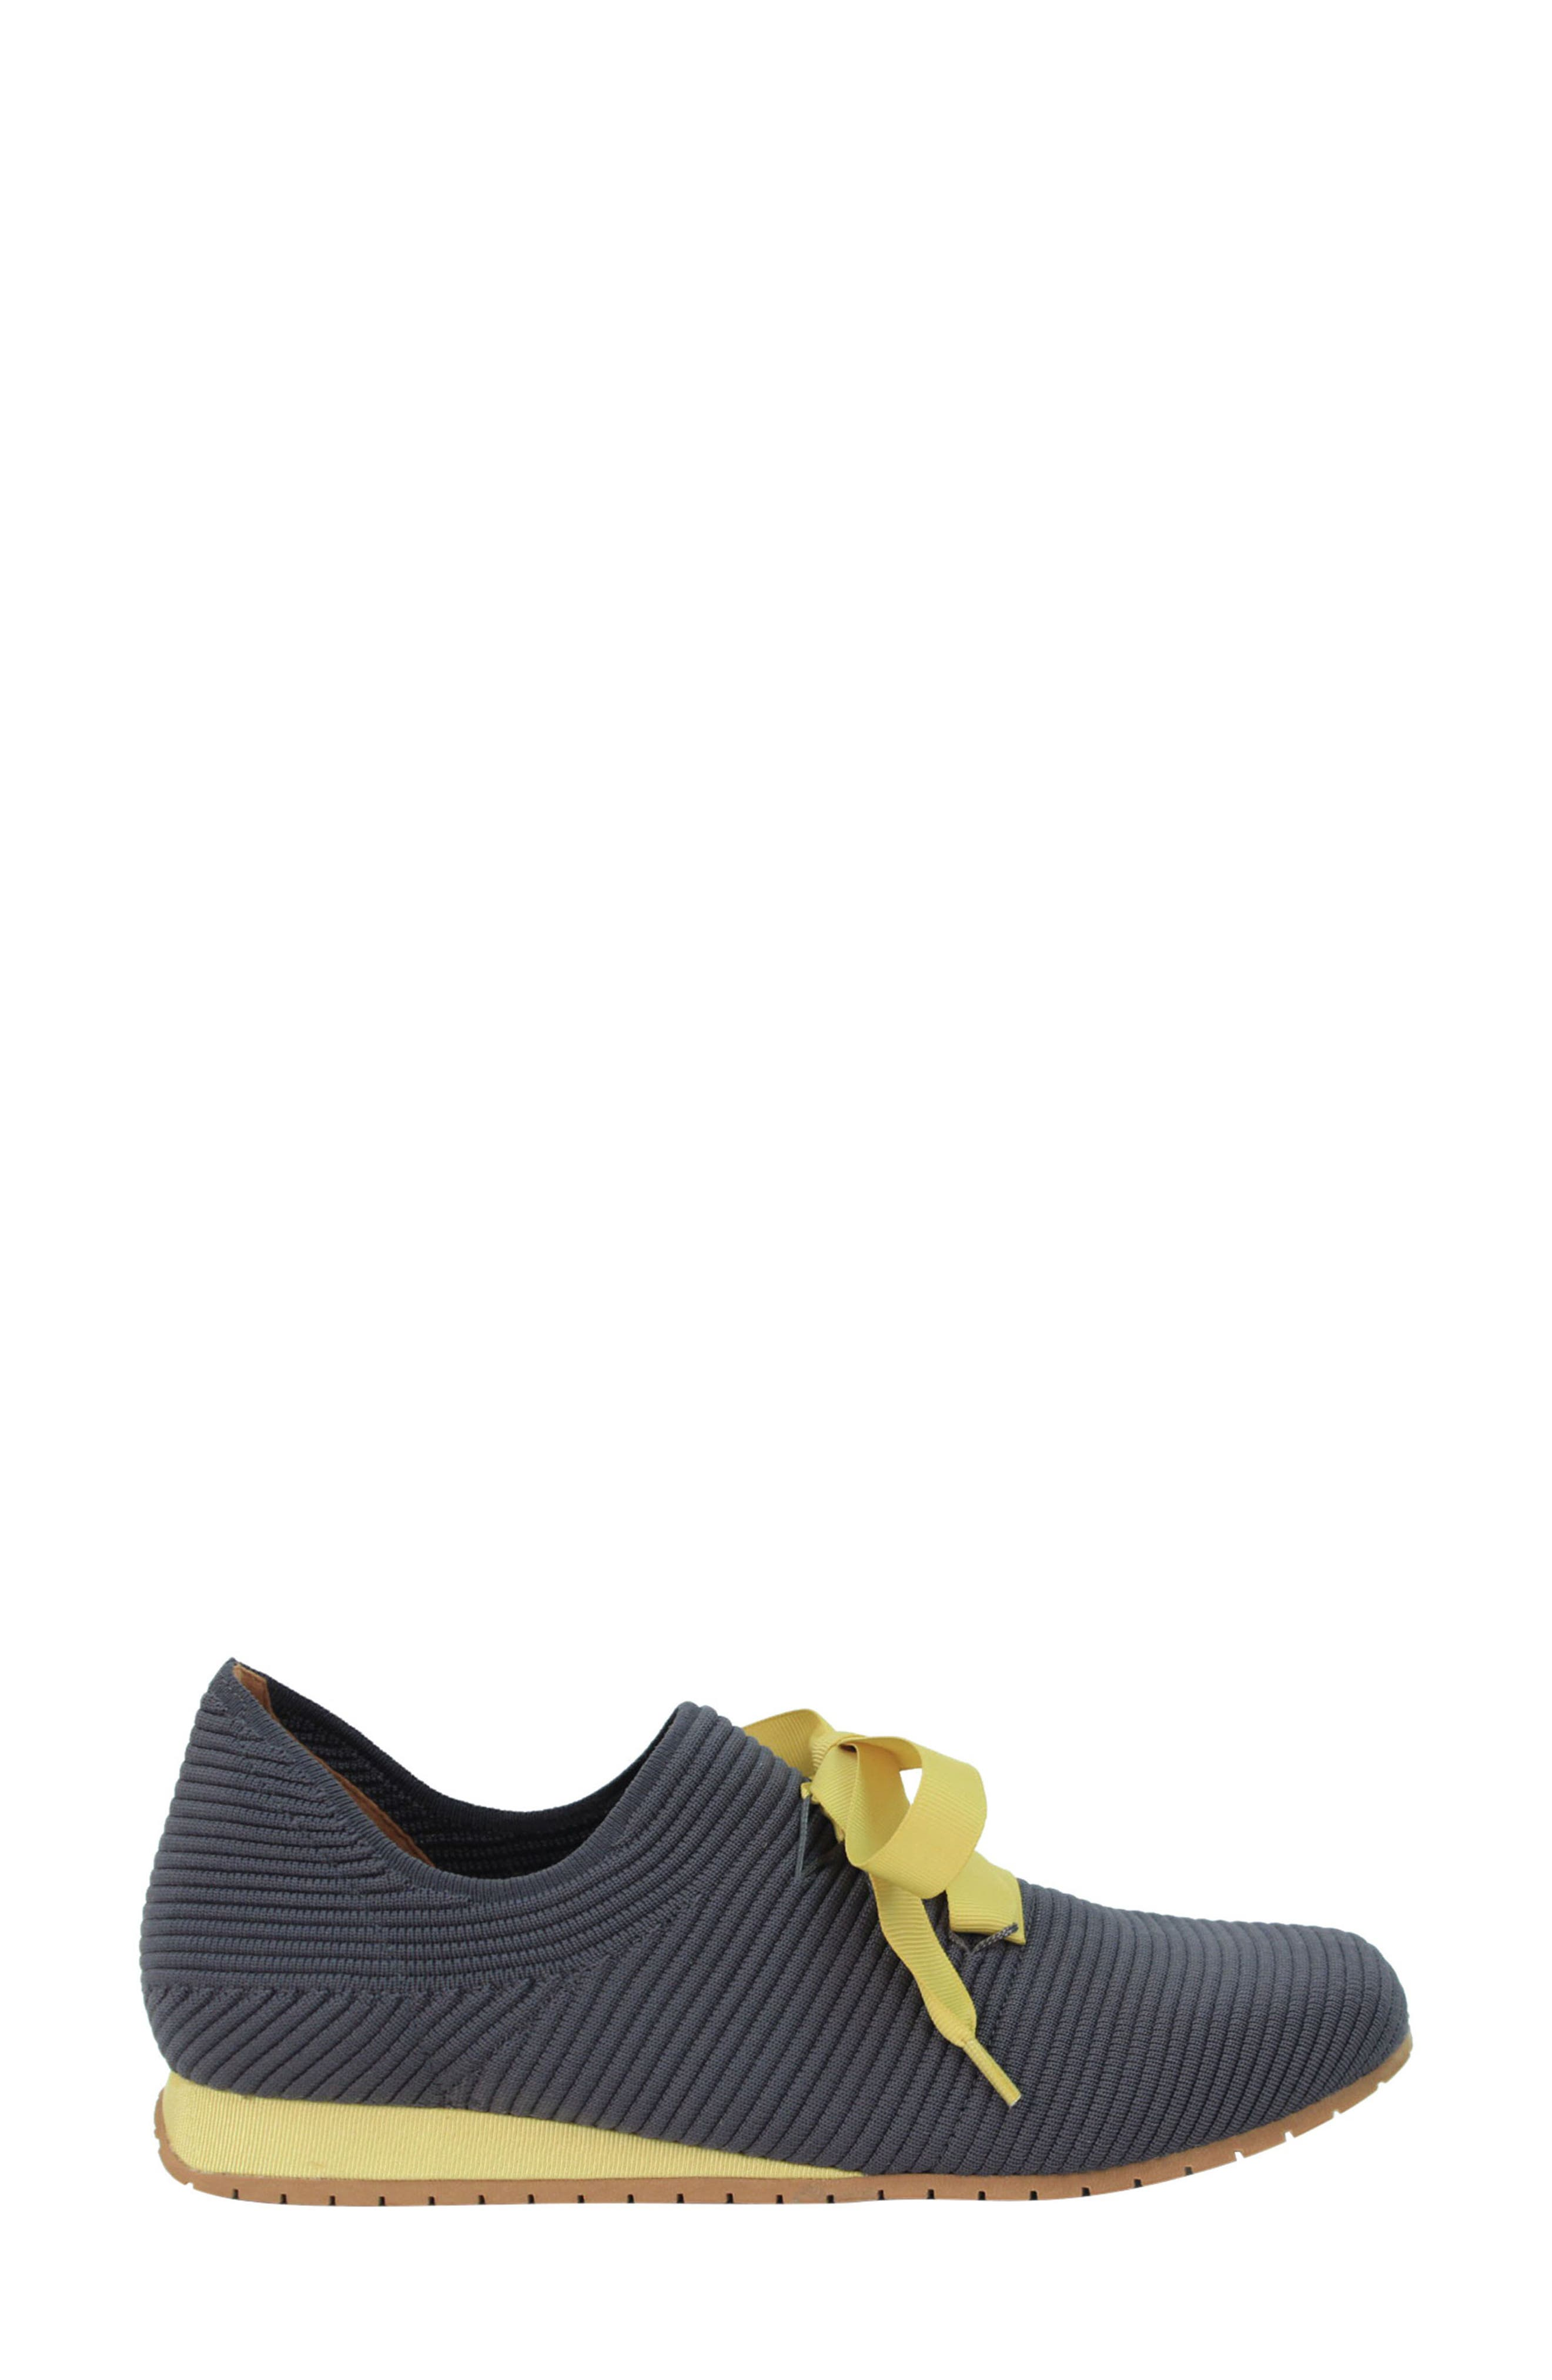 L'AMOUR DES PIEDS, Taimah Sneaker, Alternate thumbnail 7, color, DARK GREY/ YELLOW FABRIC